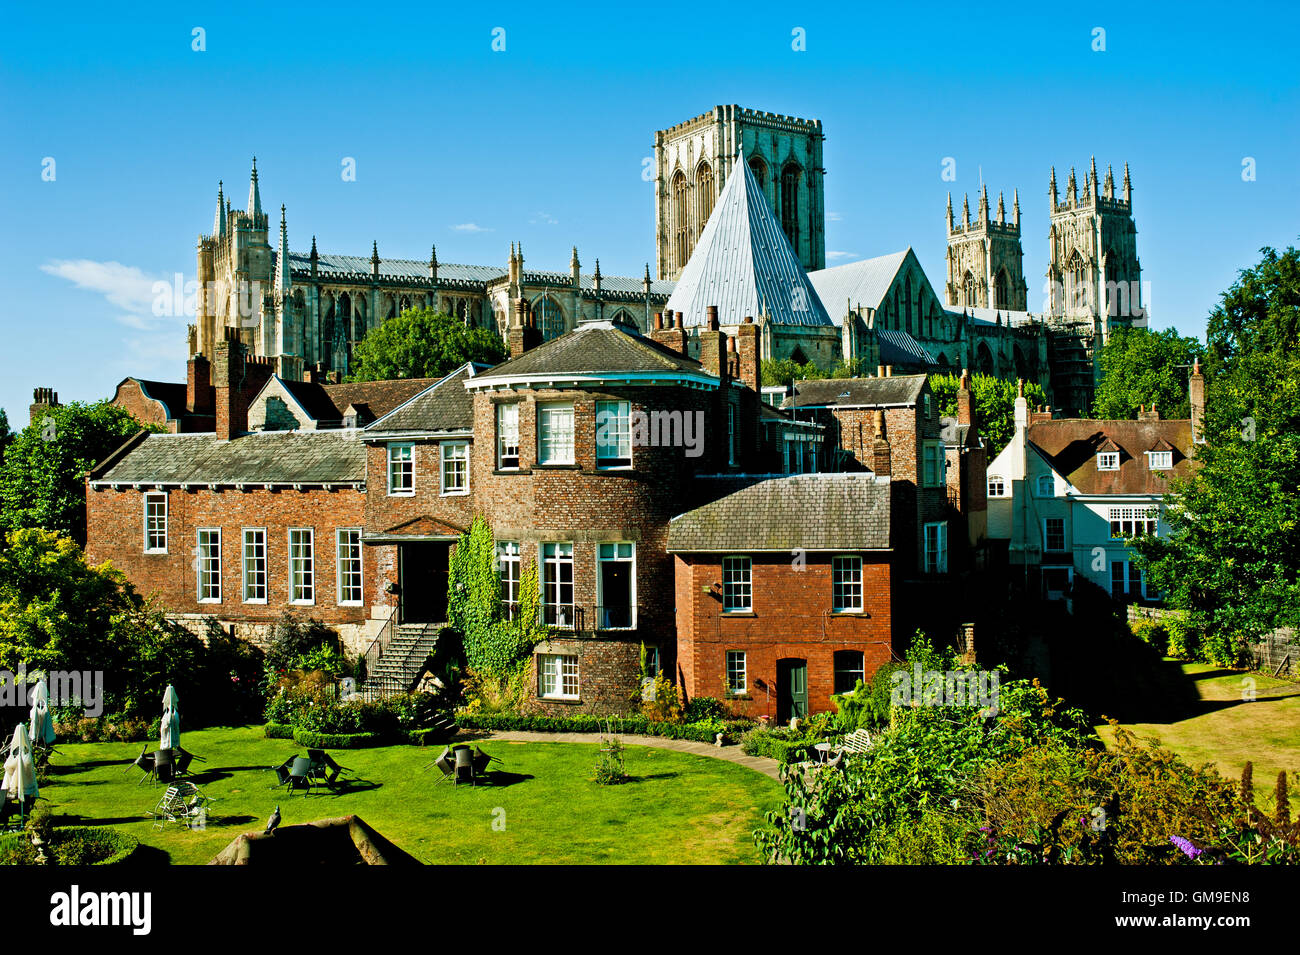 Grays Court Tea Rooms and the Minster, York - Stock Image